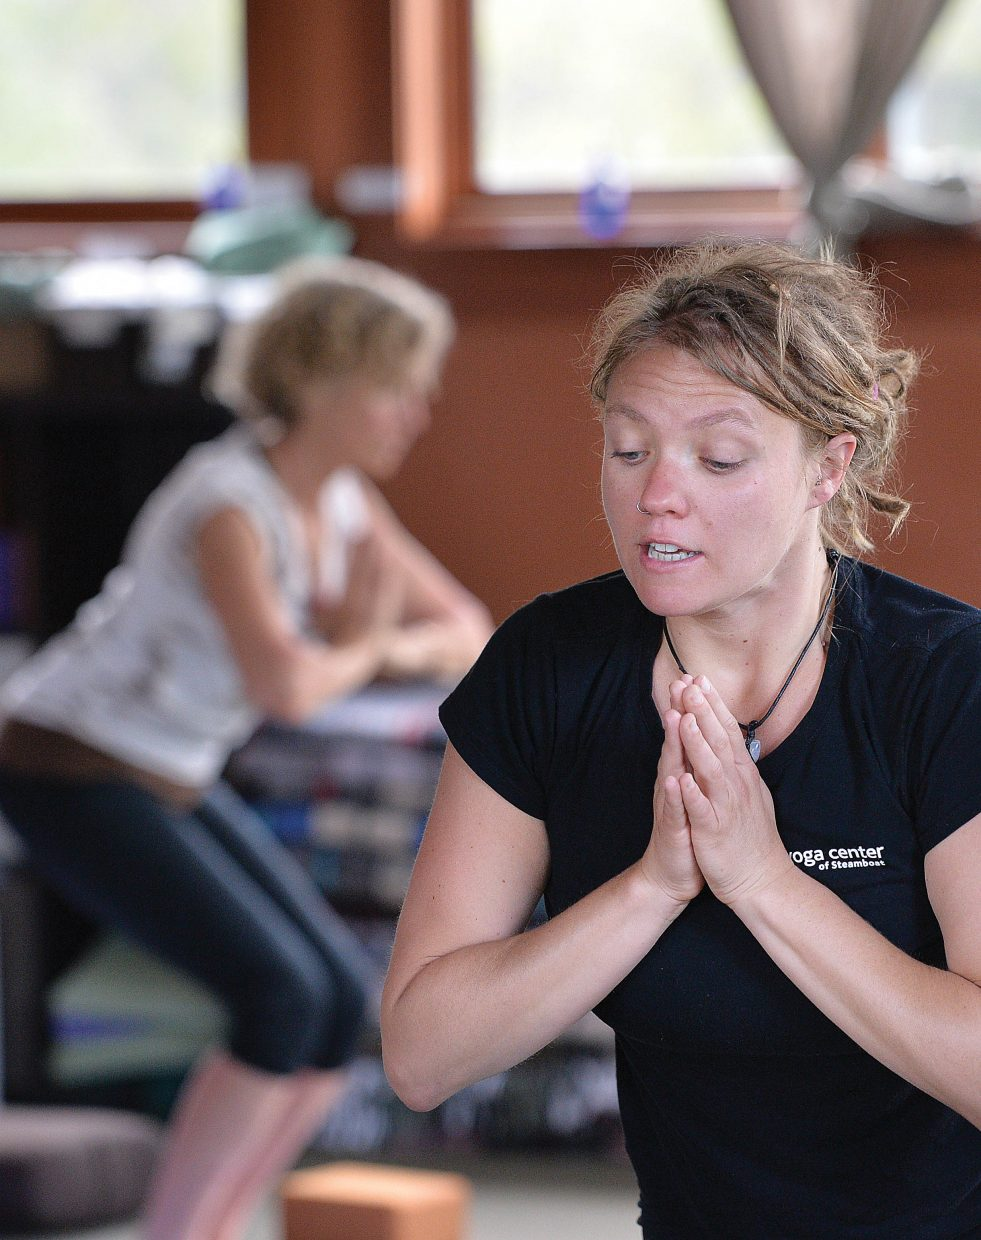 Instructor Ashley Kaszynski guides a class through a yoga session at the Yoga Center of Steamboat Springs.